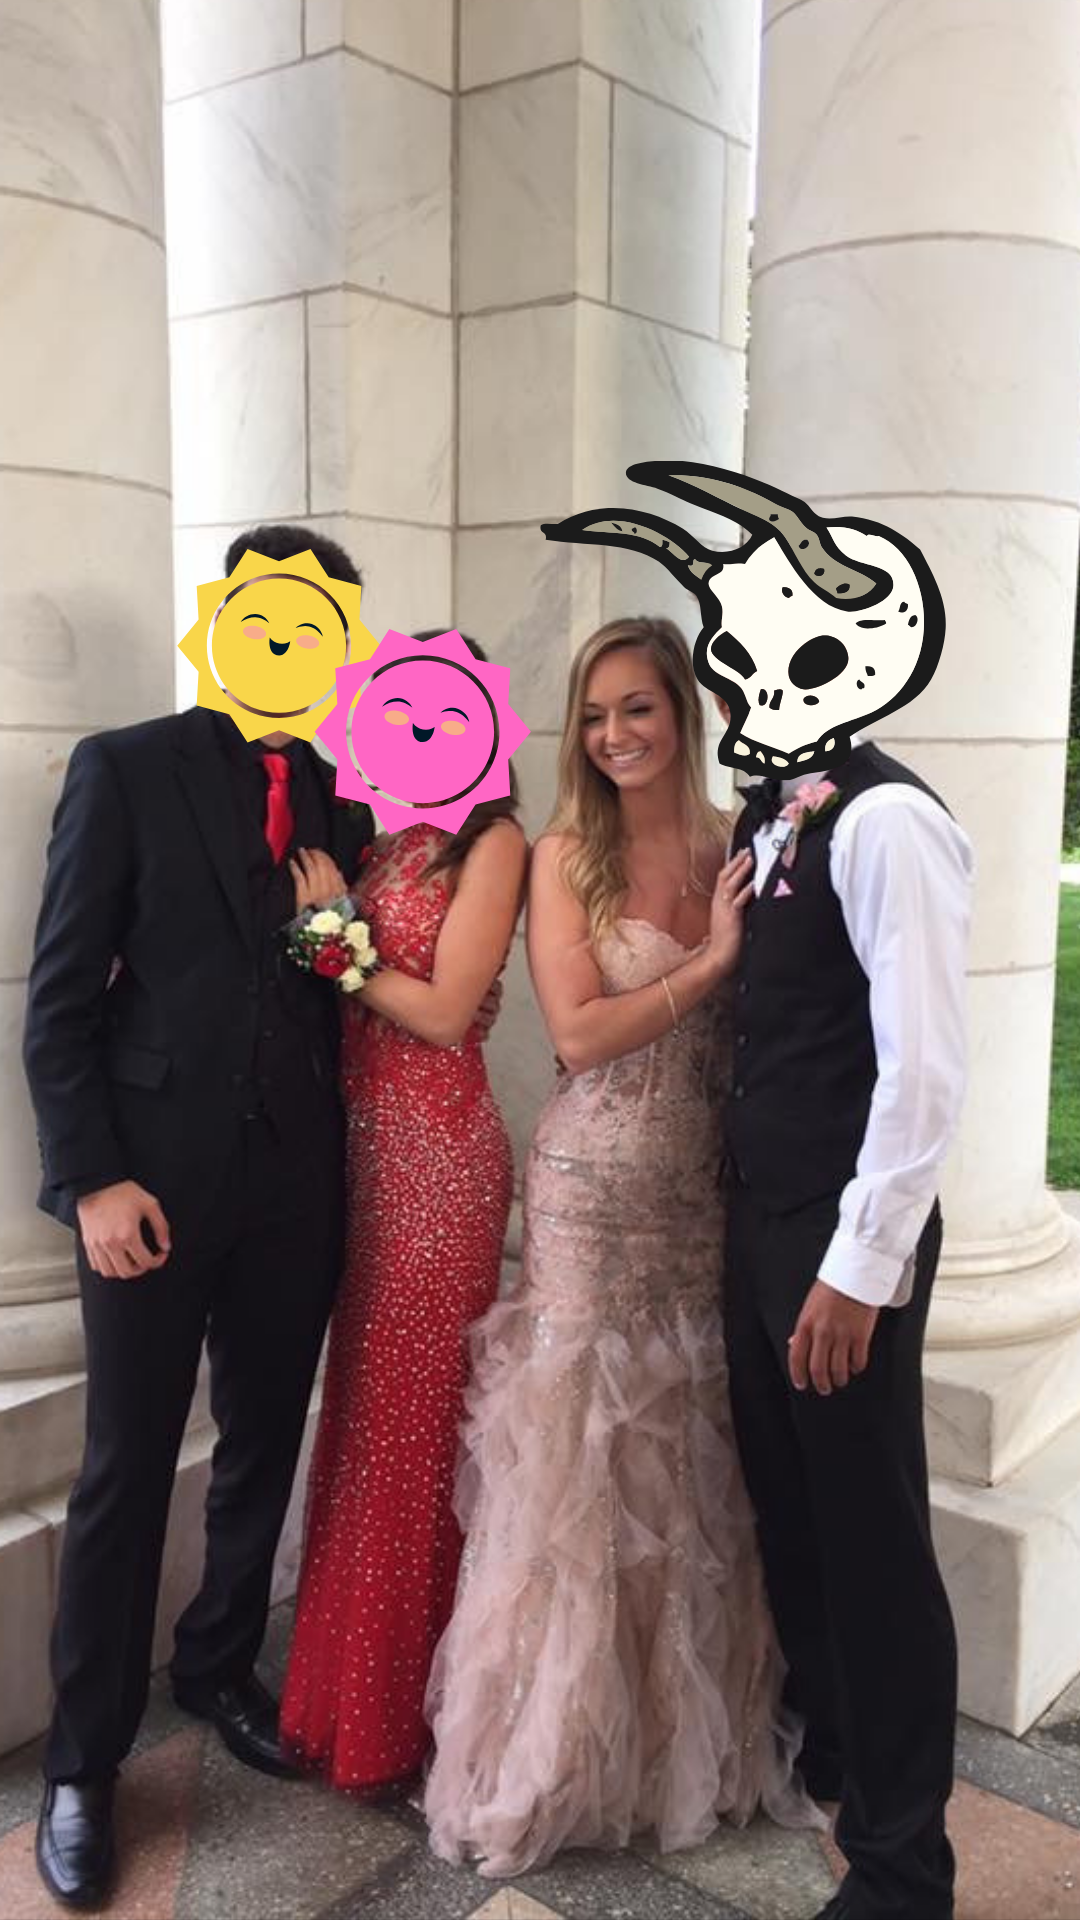 My senior prom with great friends + Chad